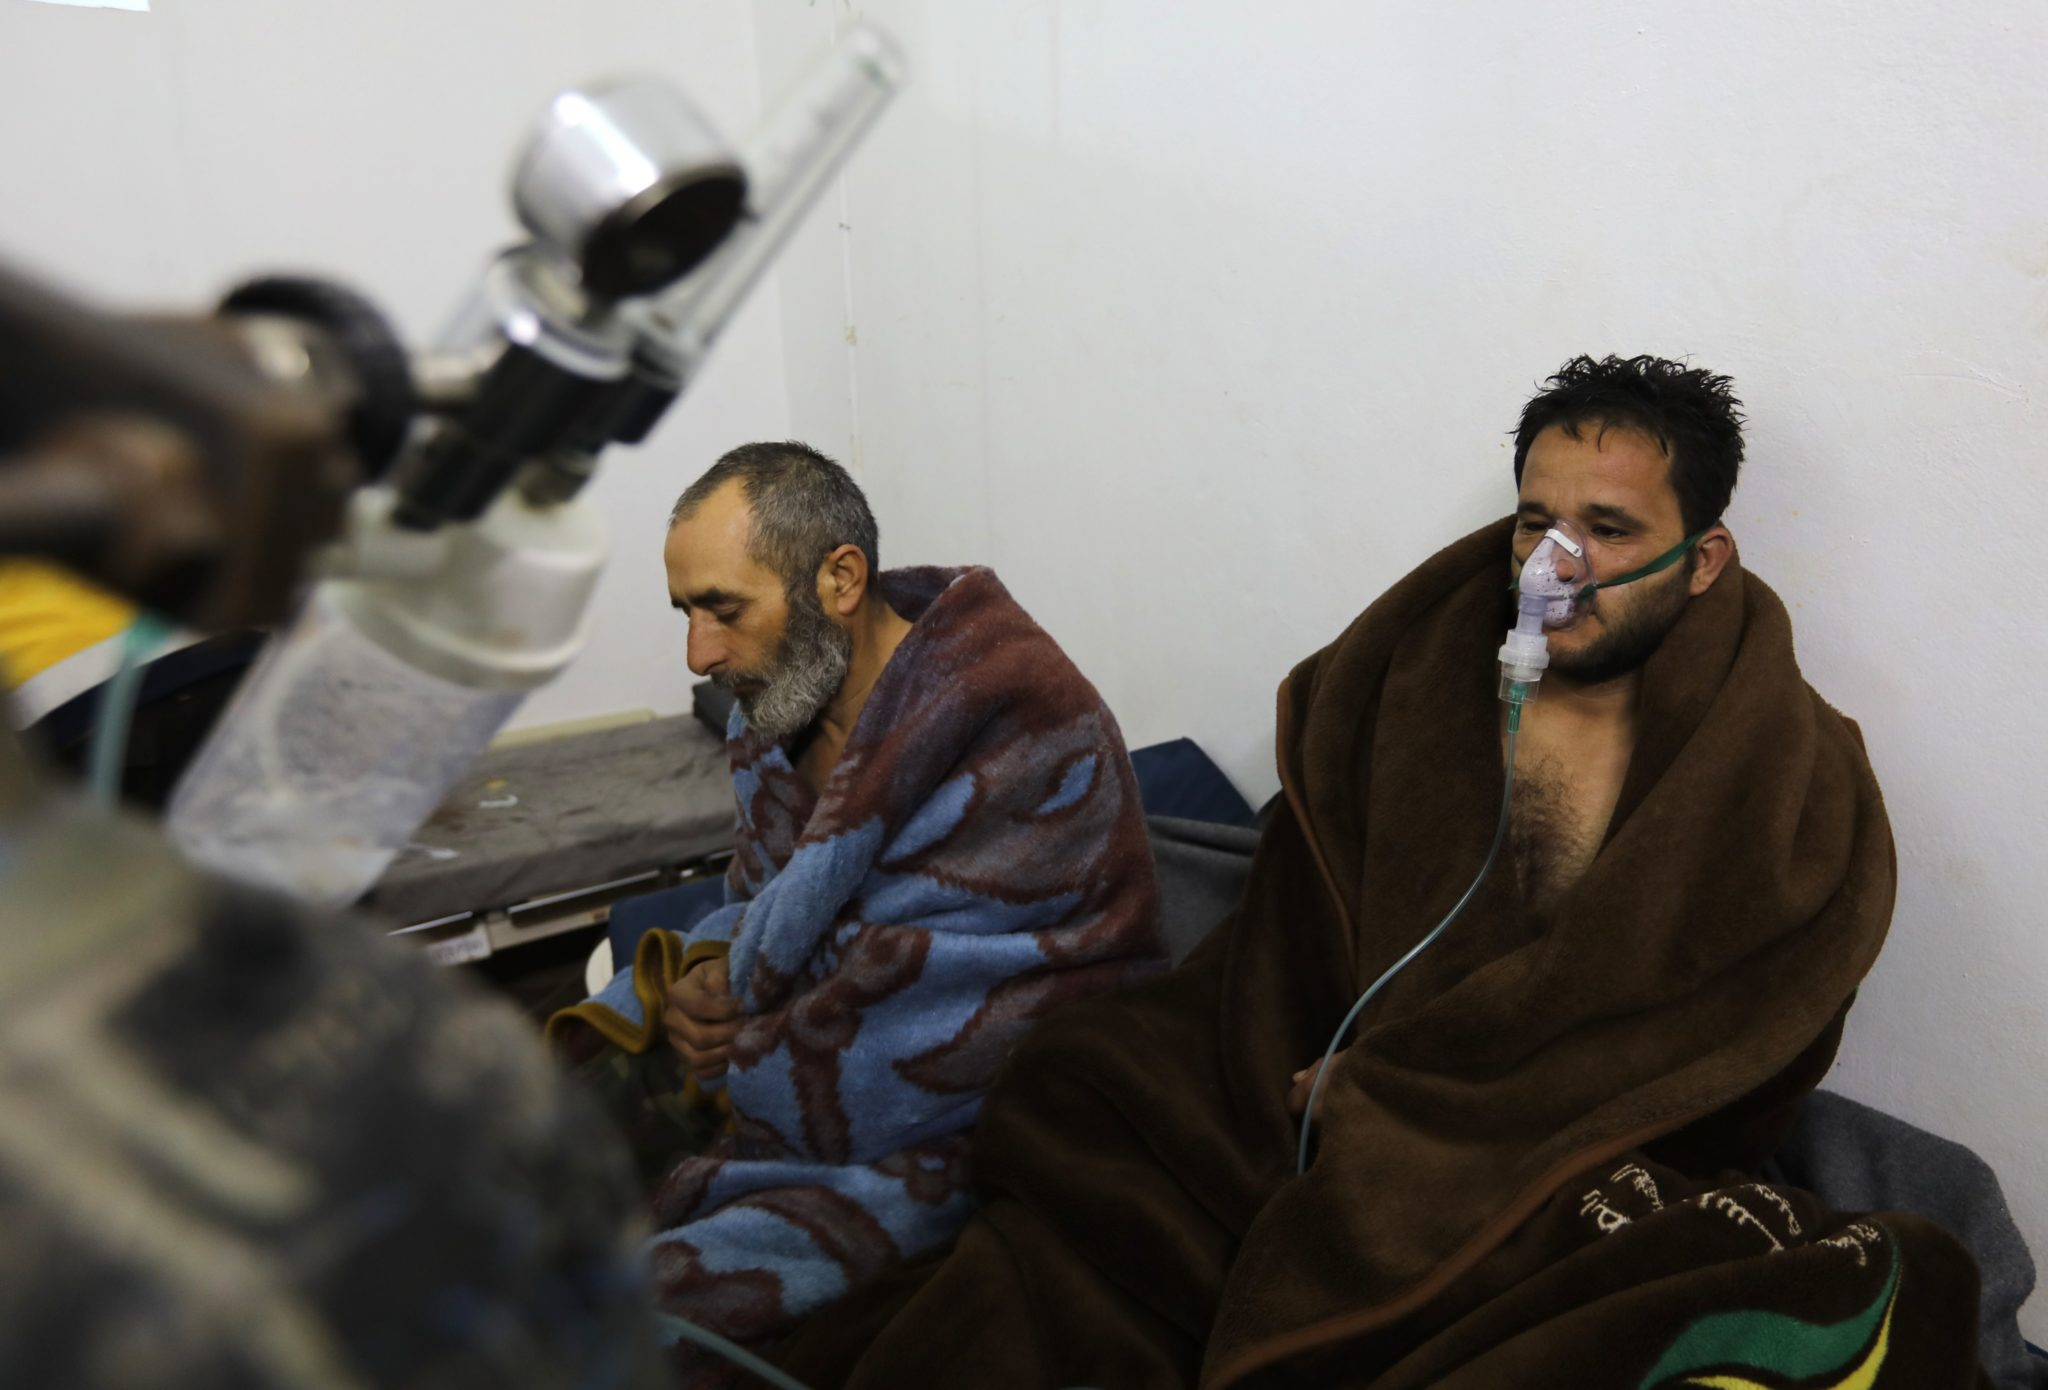 Syria: Witness testimony reveals details of illegal chemical attack on Saraqeb